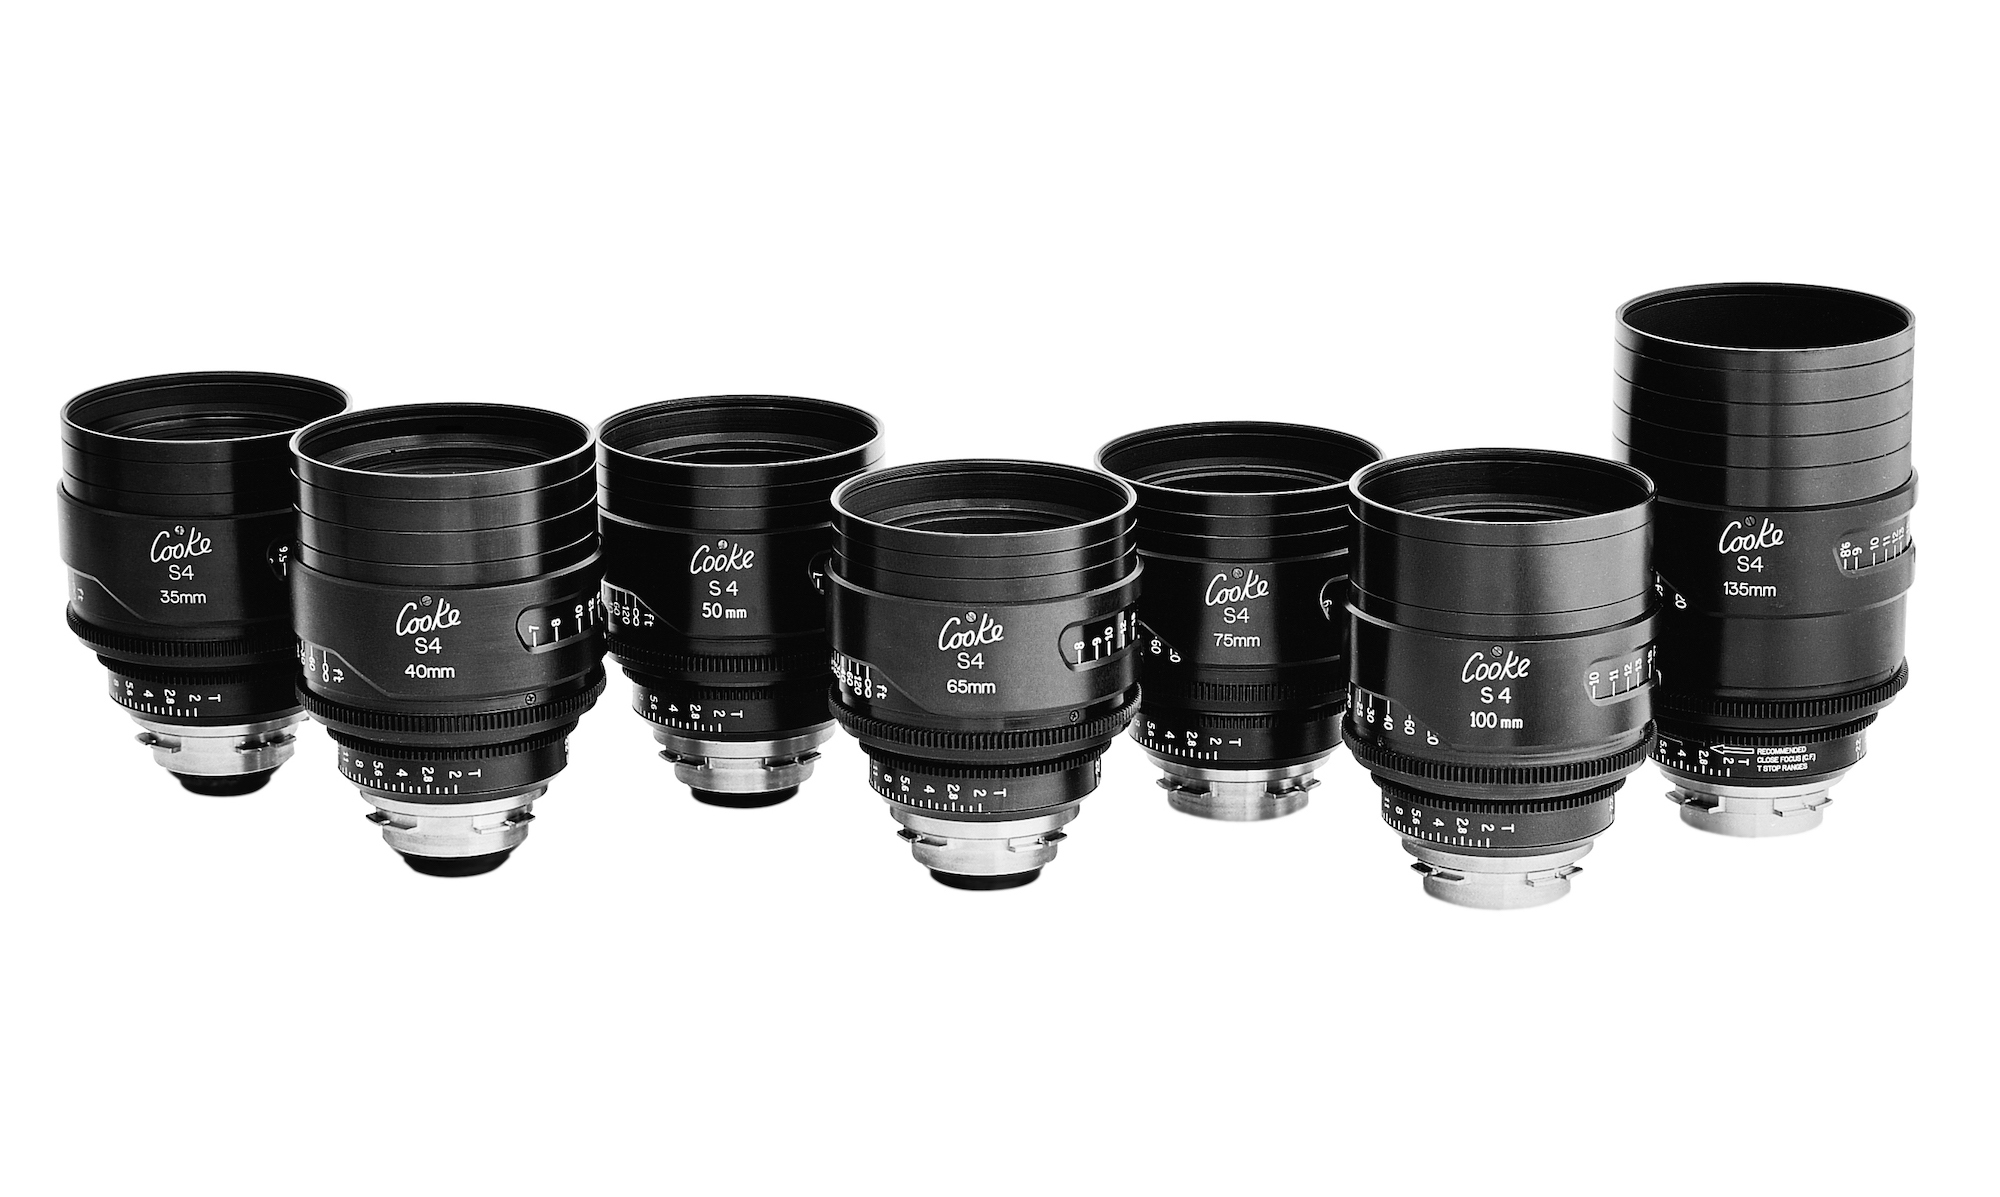 Cooke S4 T2.0 Prime Lenses